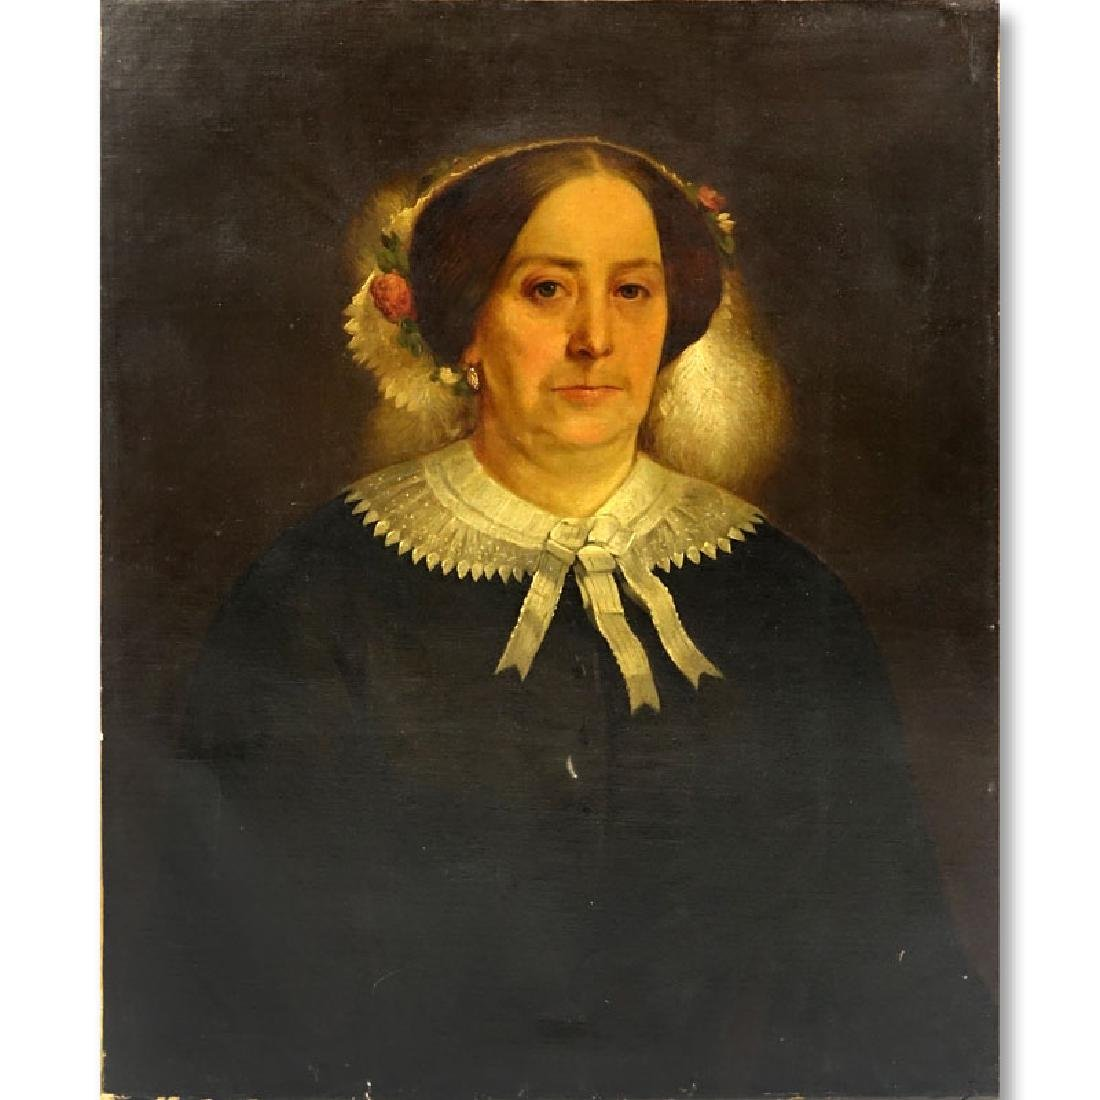 Circa 1840 American Oil on Canvas, Portrait of a Lady.